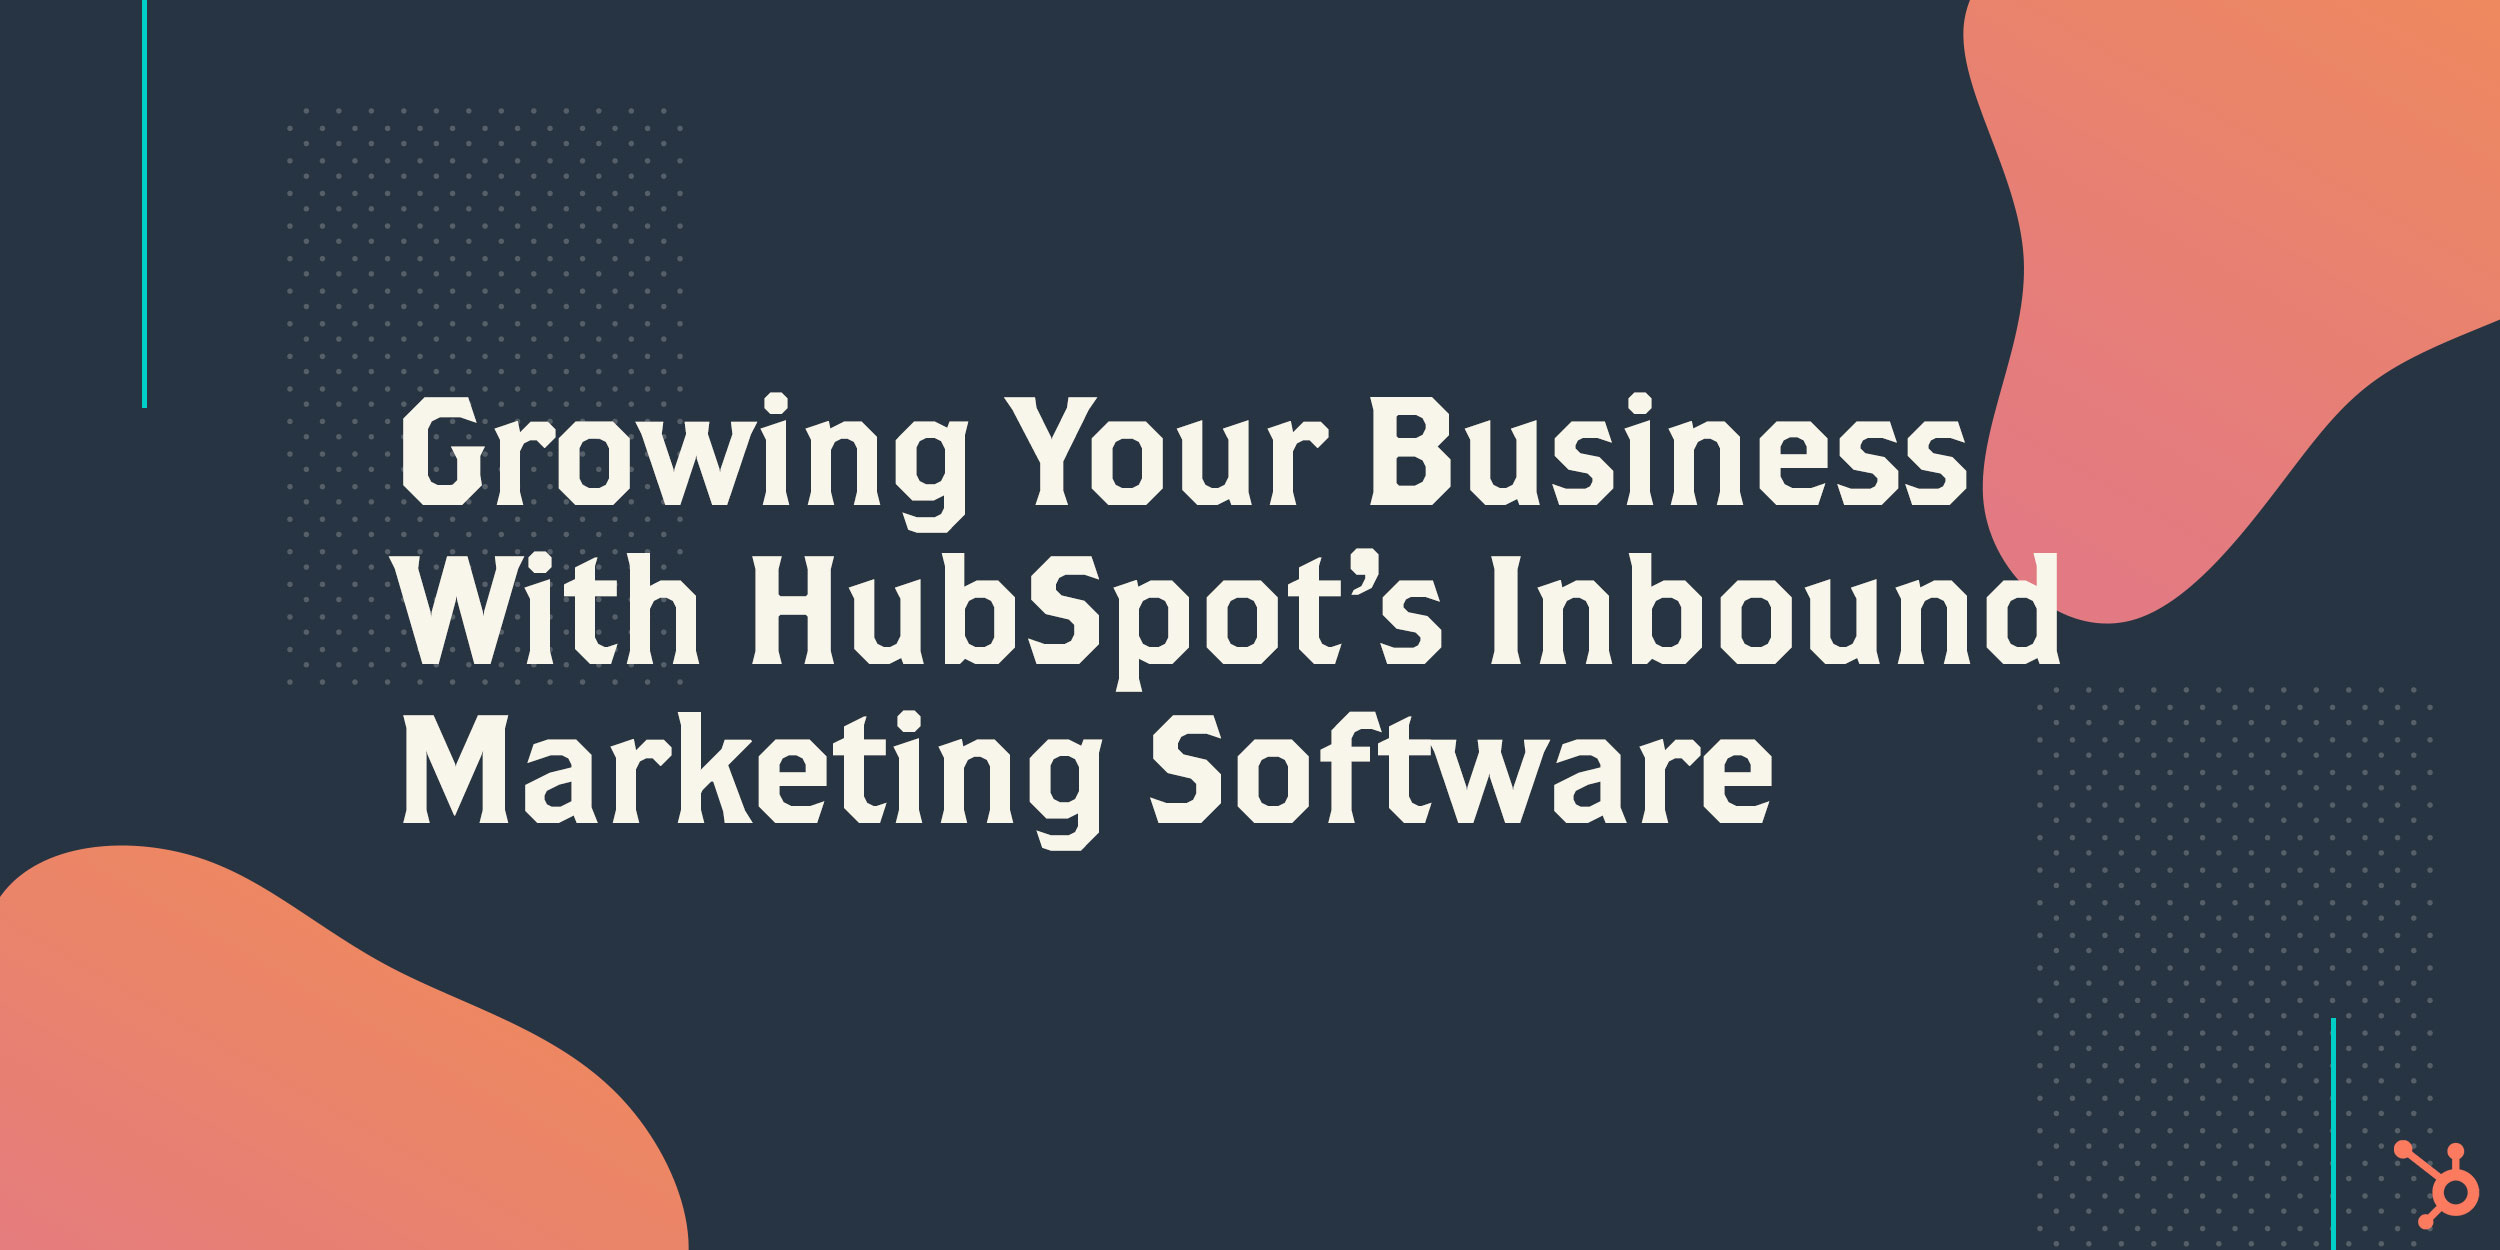 Growing Your Business With HubSpot's Inbound Marketing Software